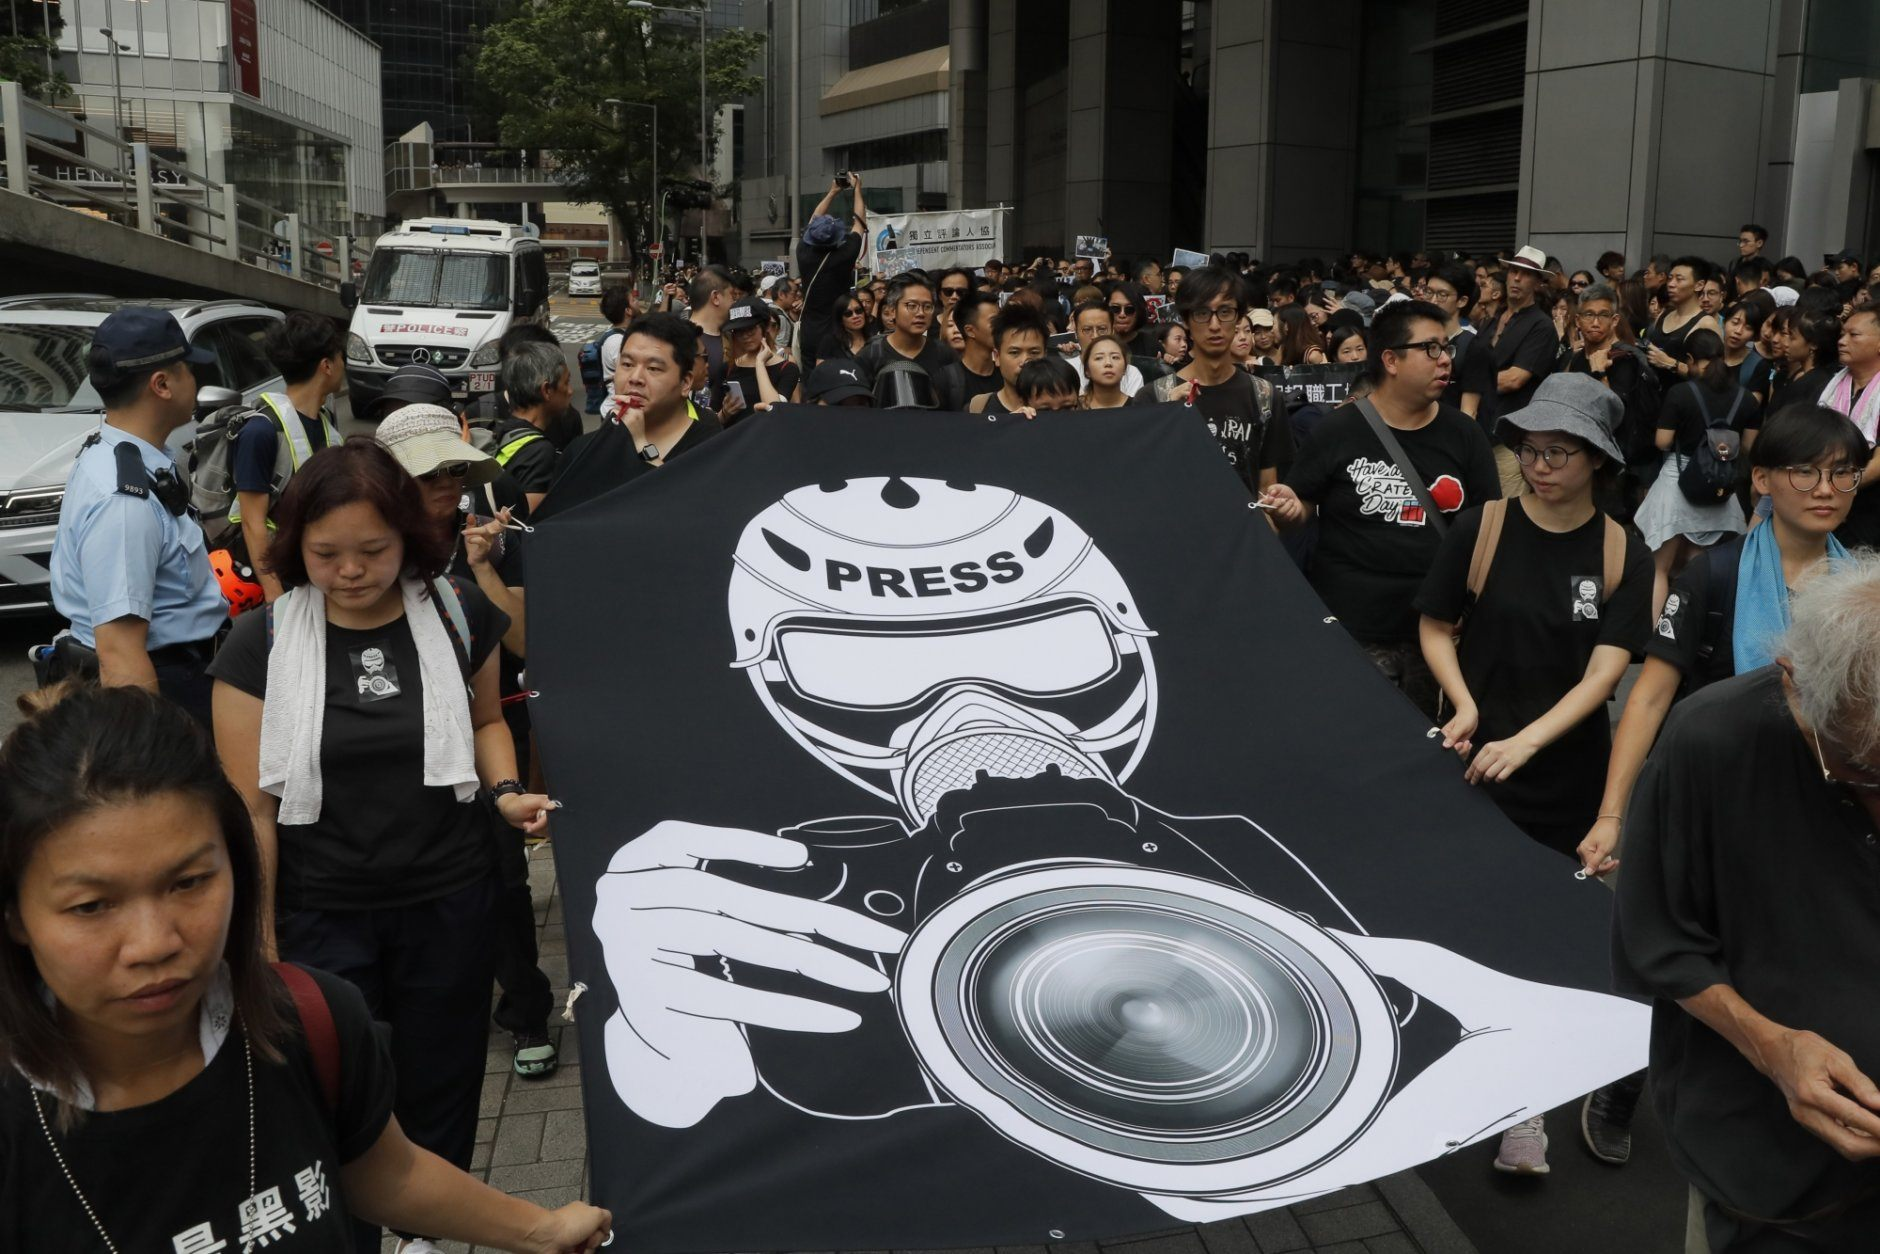 Hundreds of journalists hold banner during a silent march outside the police headquarters in Hong Kong, Sunday, July 14, 2019, demanding police to stop assaulting journalists and obstructing reporting. (AP Photo/Kin Cheung)